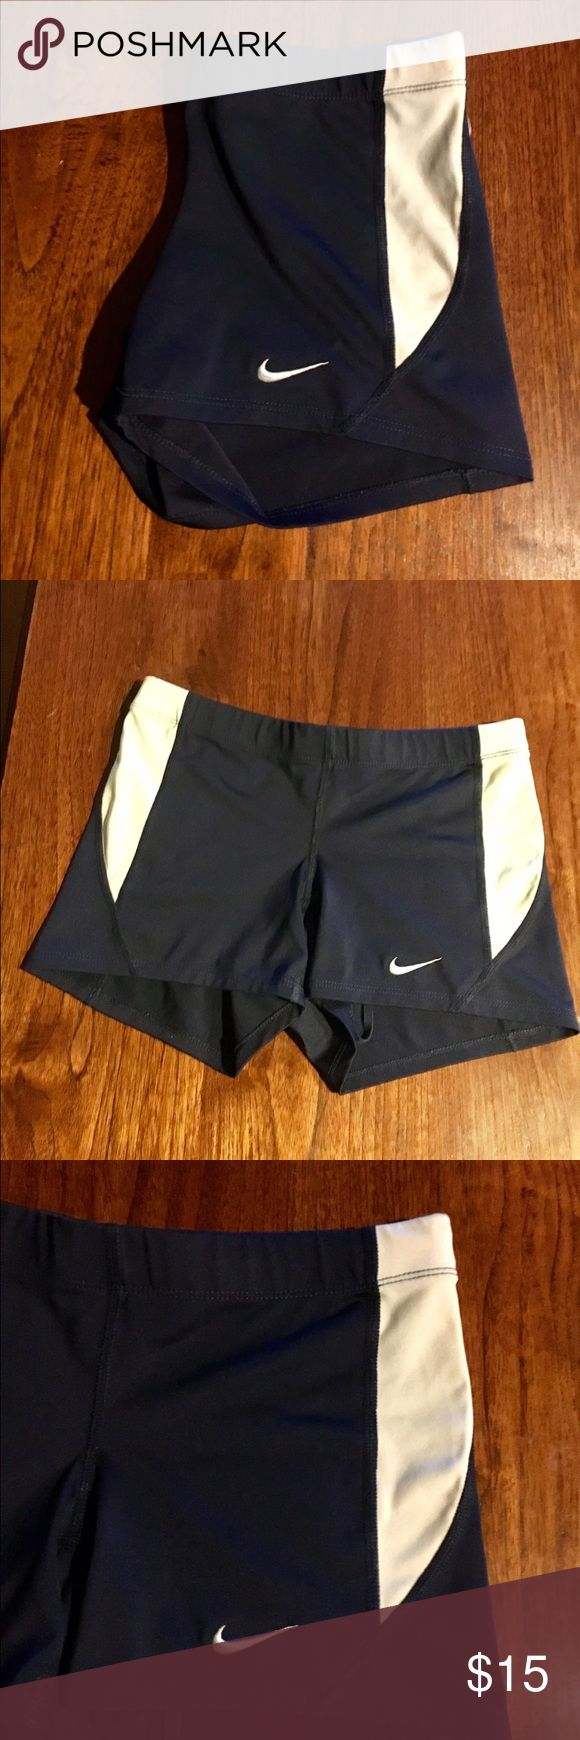 Nike dri fit compression shorts Navy and white Nike dri fit shorts in good condition. Nike Shorts